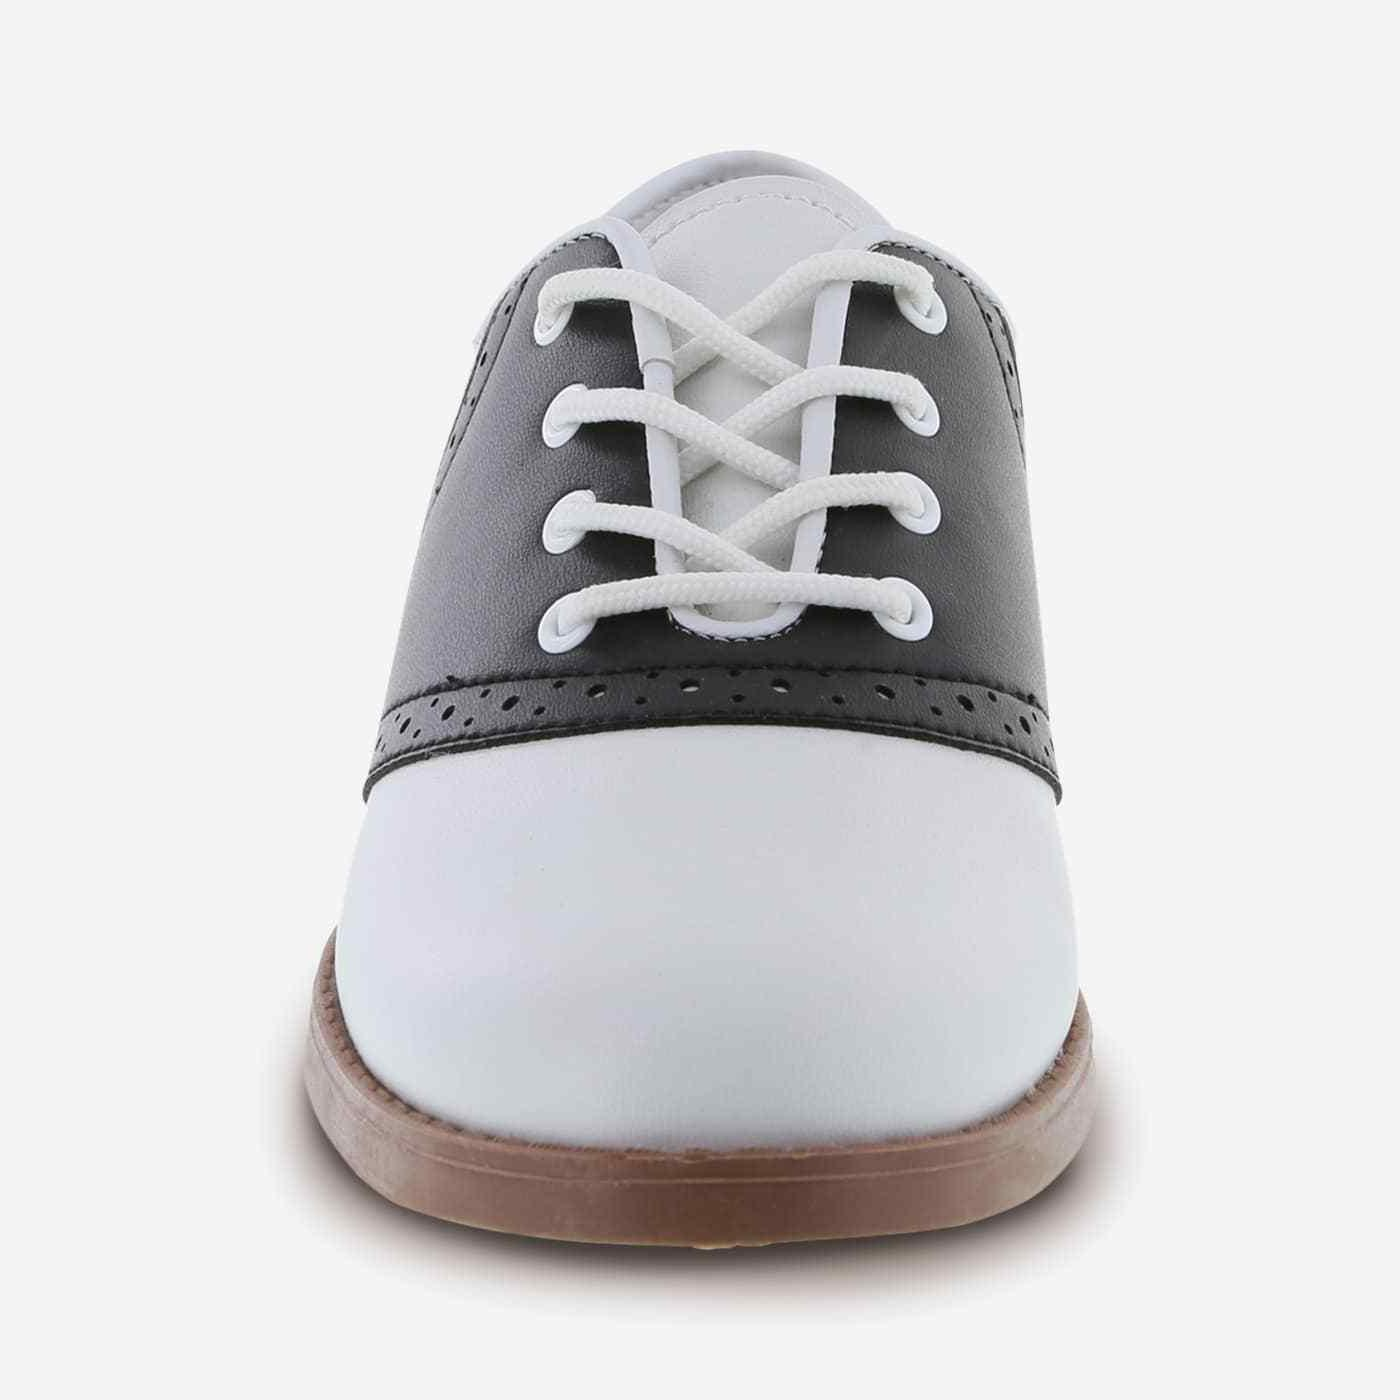 womens oxford shoes wide ONES!